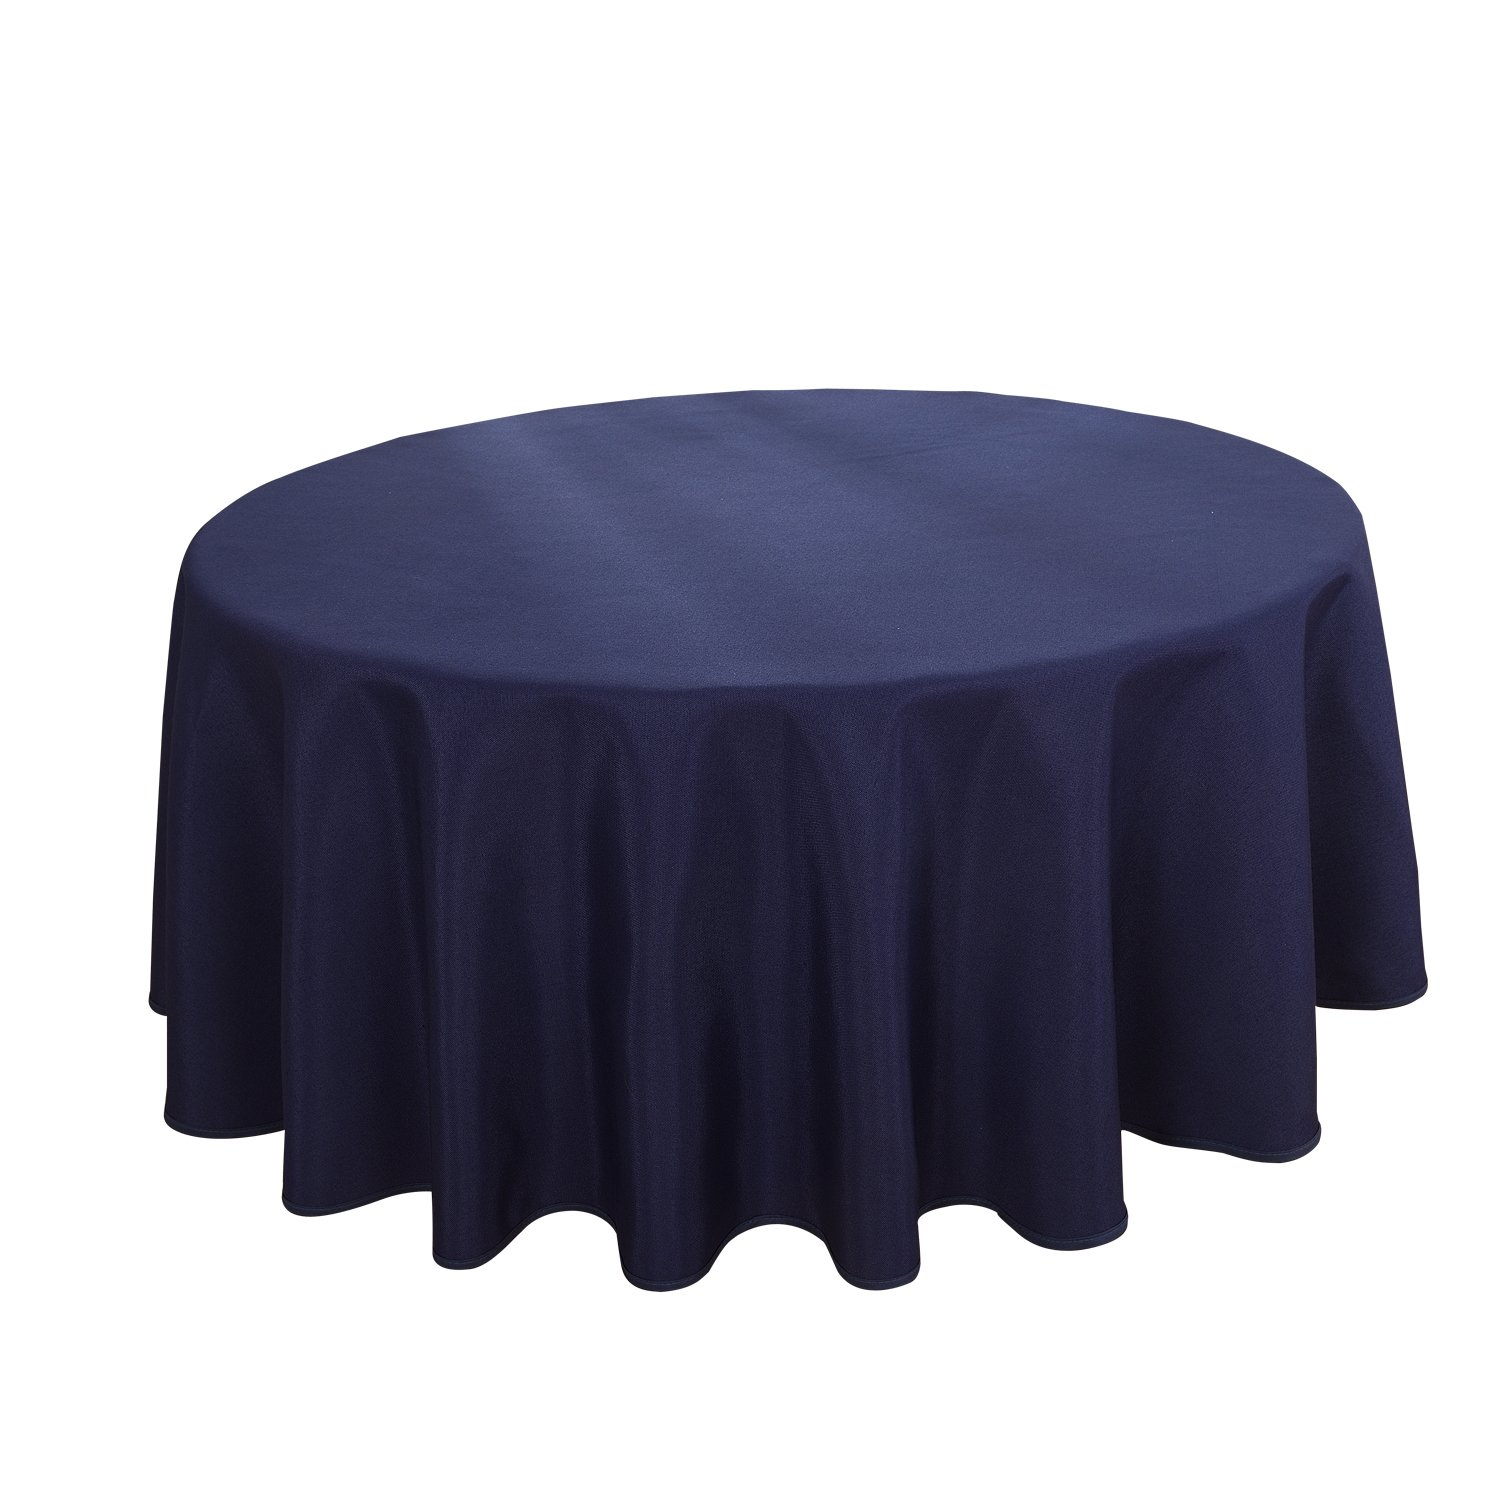 HIGHFLY Linen Round Tablecloth 45 Inch Waterproof Beige Tablecloth for Talking Table Coffee Bar